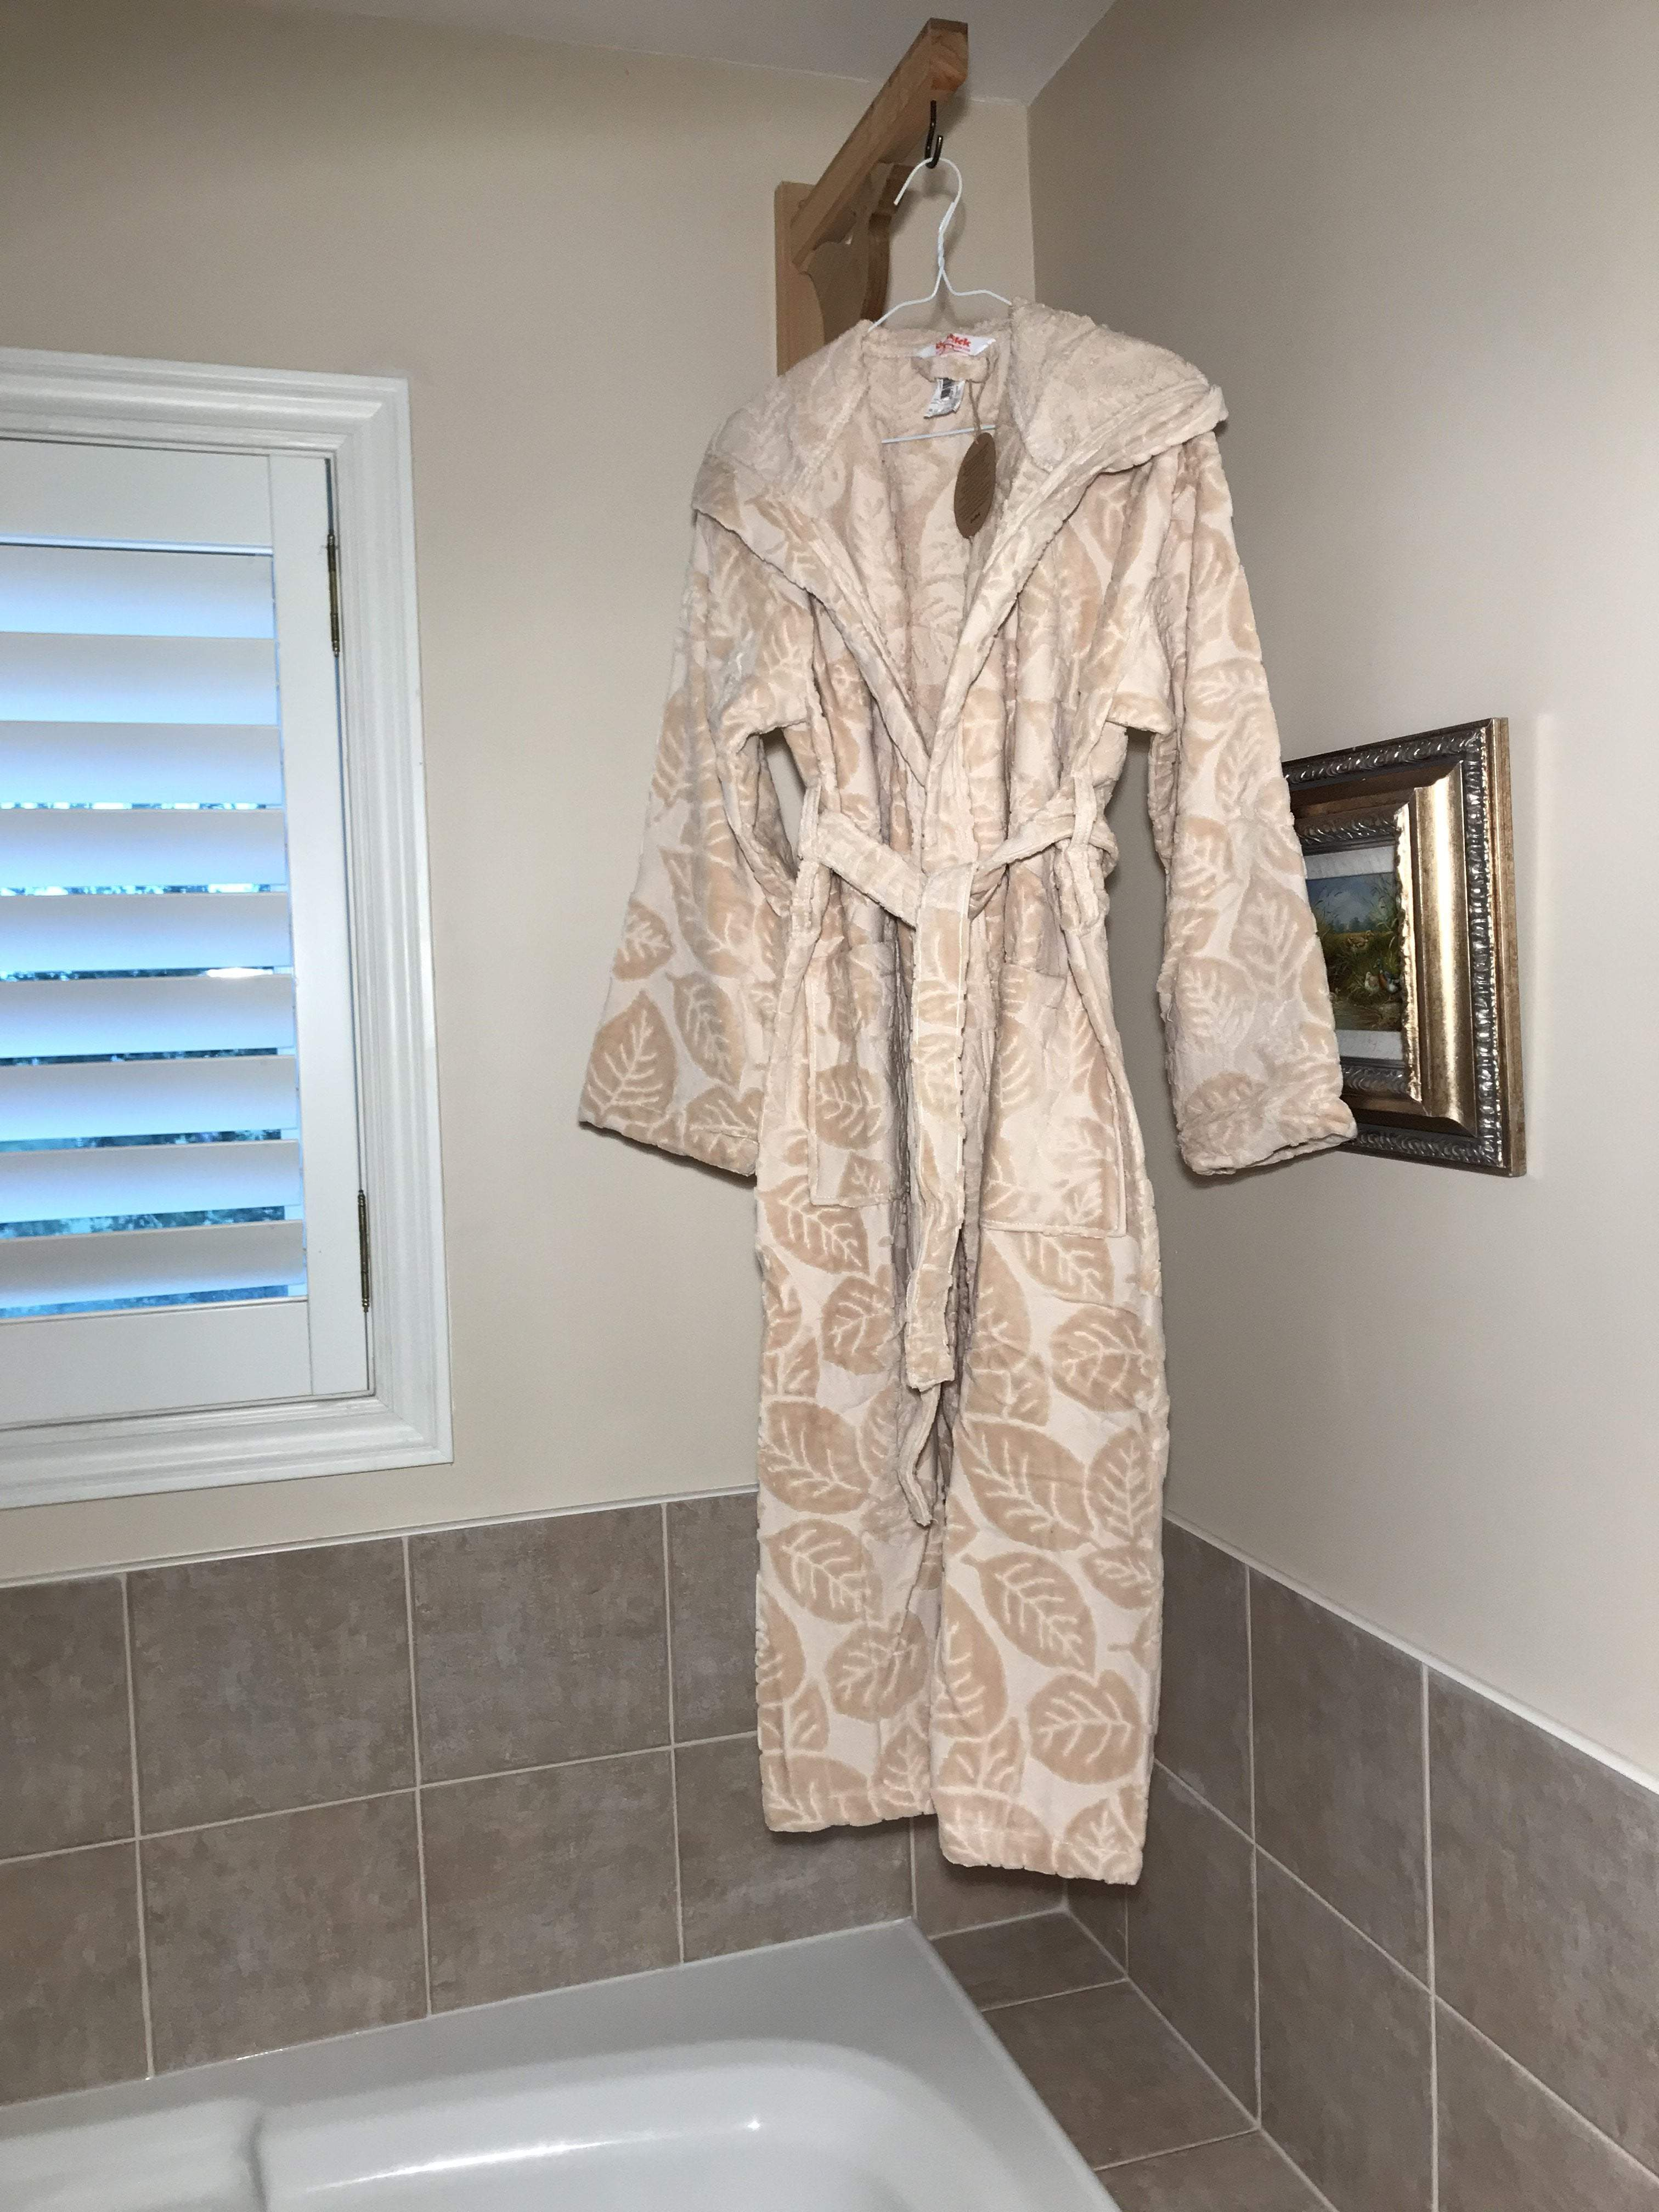 HOODED BATHROBE TOWEL - COTTONISH